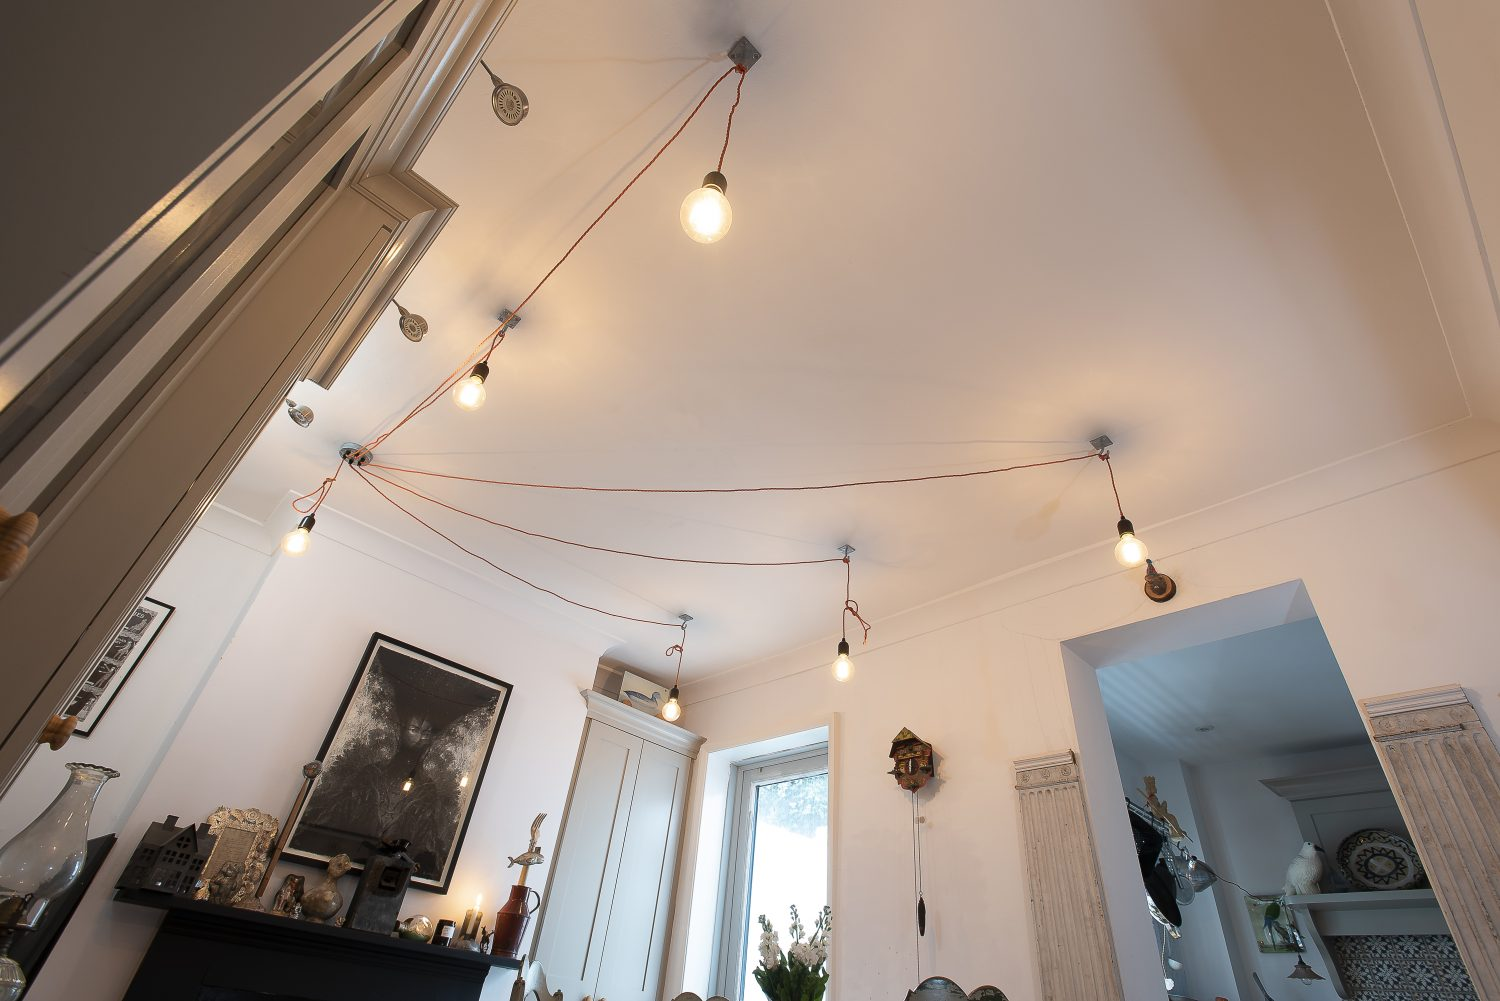 In the dining room, varied lengths of bright orange corded cable stretch out from the central ceiling rose with bare bulbs hanging from hooks